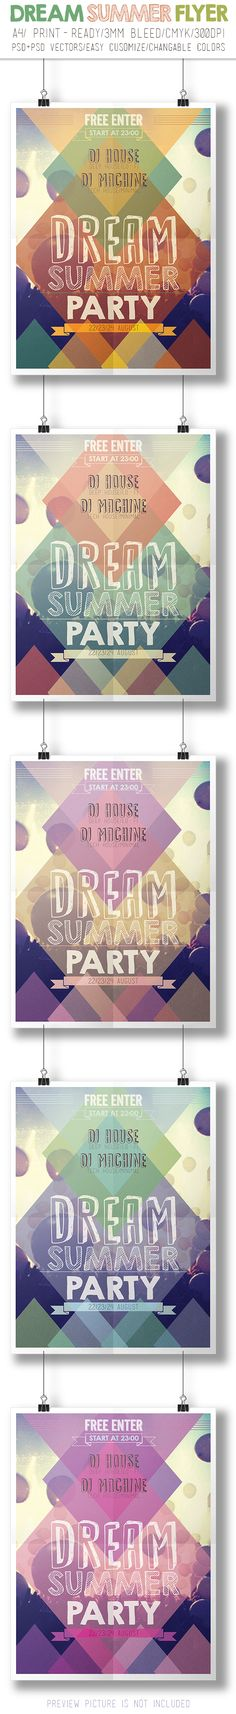 Summer Party Flyer by crew55design, via Behance